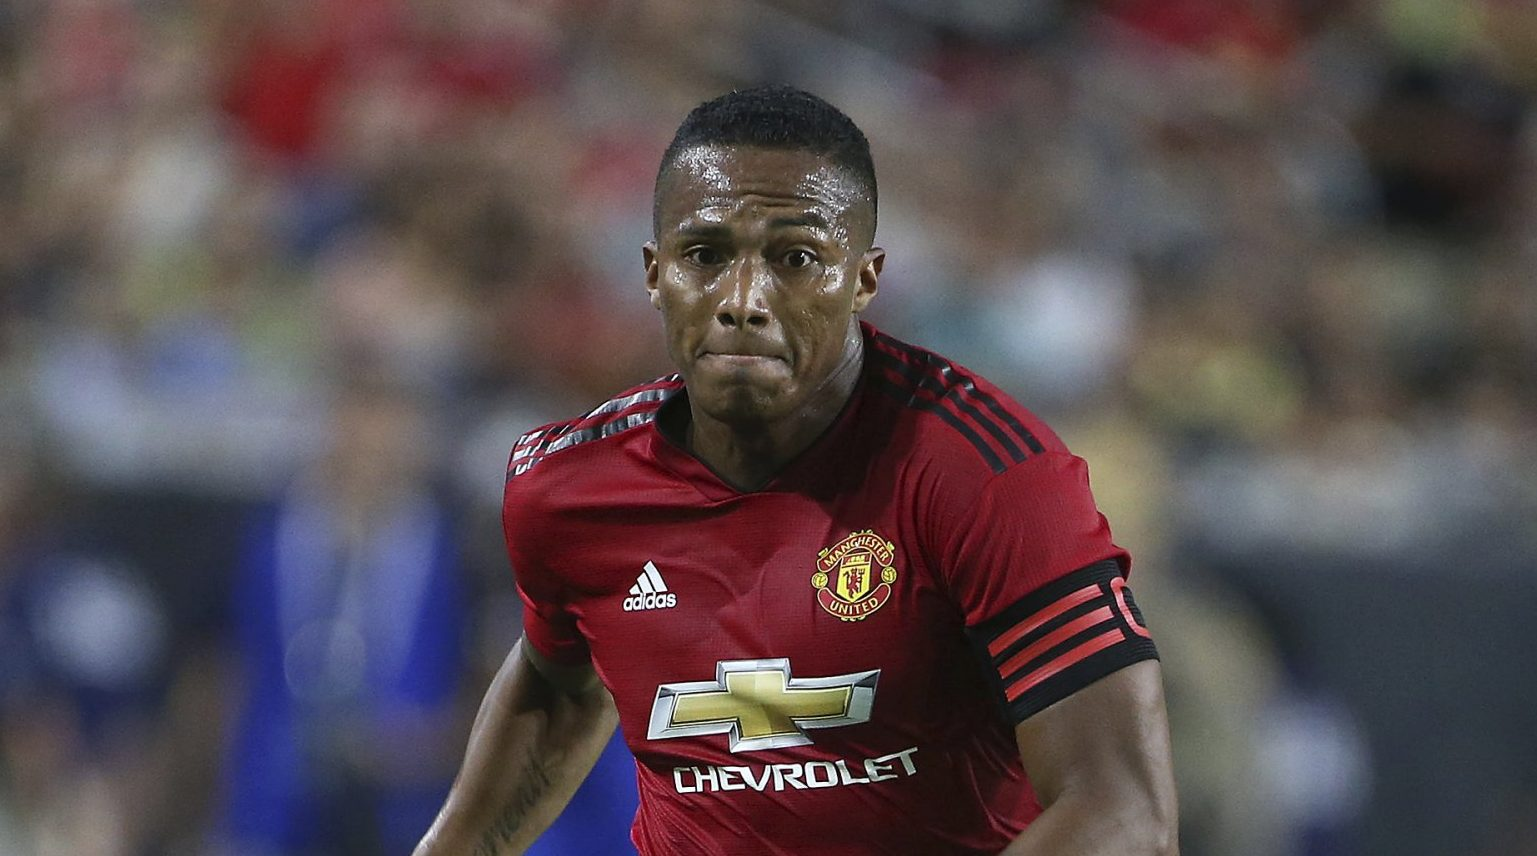 Manchester United defender Antonio Valencia advances the ball against Club America during the first half of a friendly soccer match at University of Phoenix Stadium, Thursday, July 19, 2018, in Glendale, Ariz. (AP Photo/Ralph Freso)